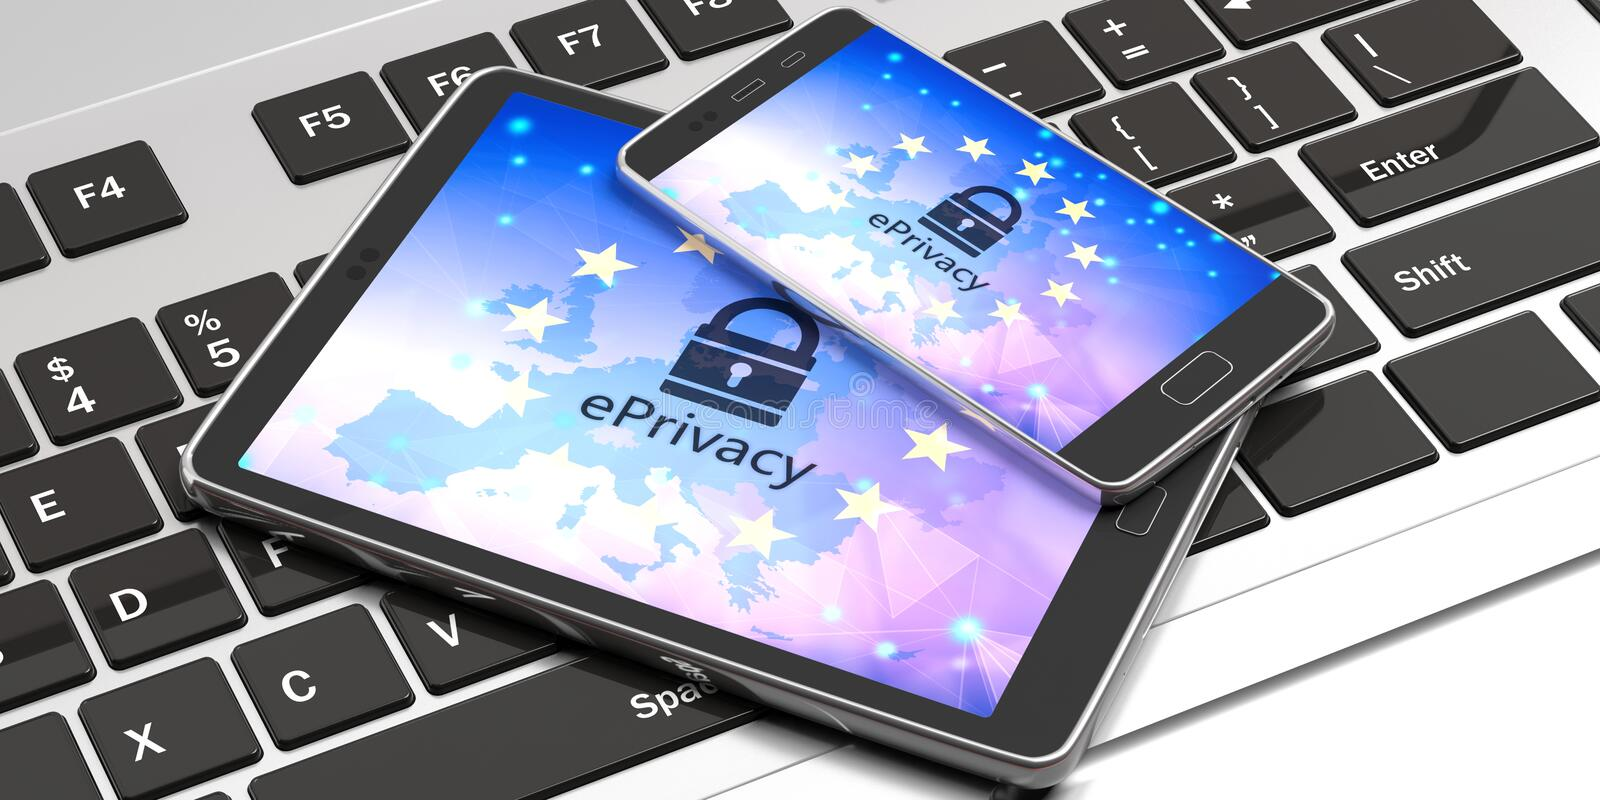 Eprivacy on electronic devices screens. 3d illustration stock illustration